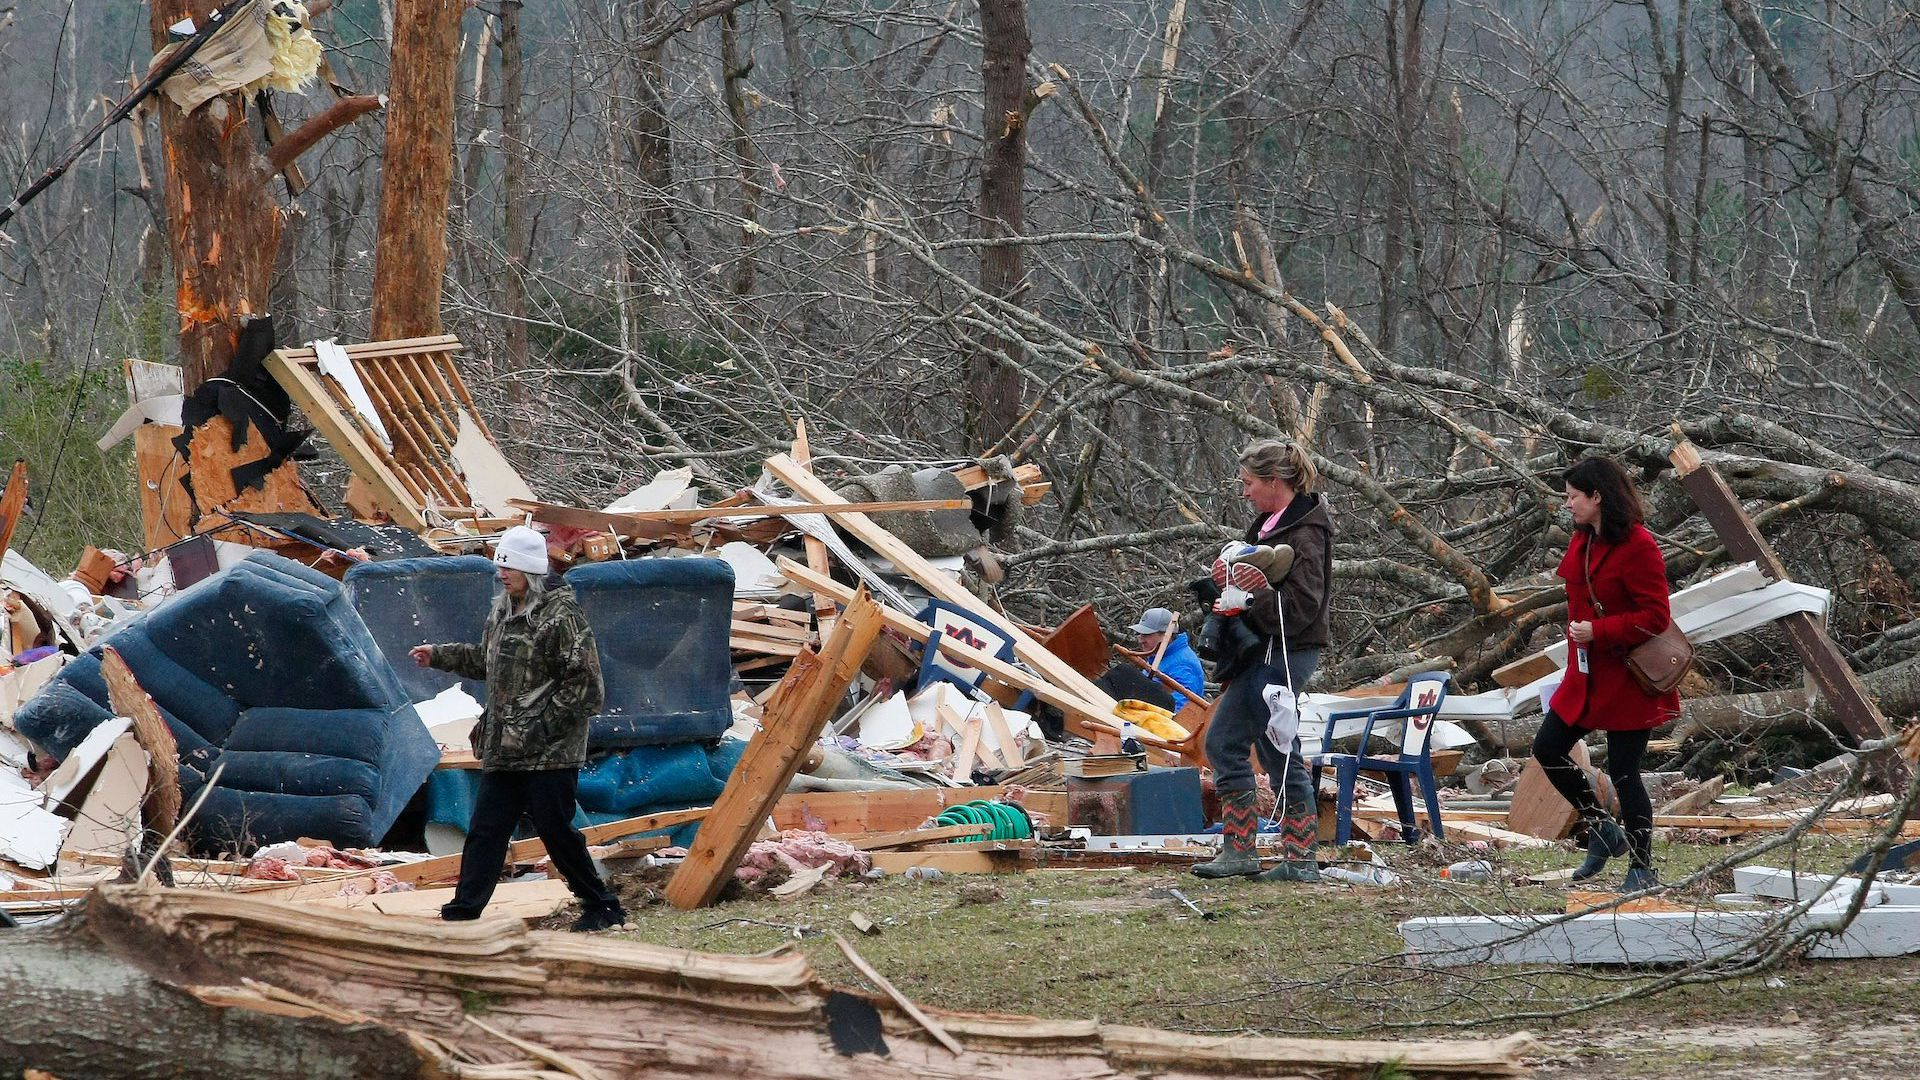 Residents look for belongings March 4, 2019 at a home after a tornado in Beauregard, Alabama.